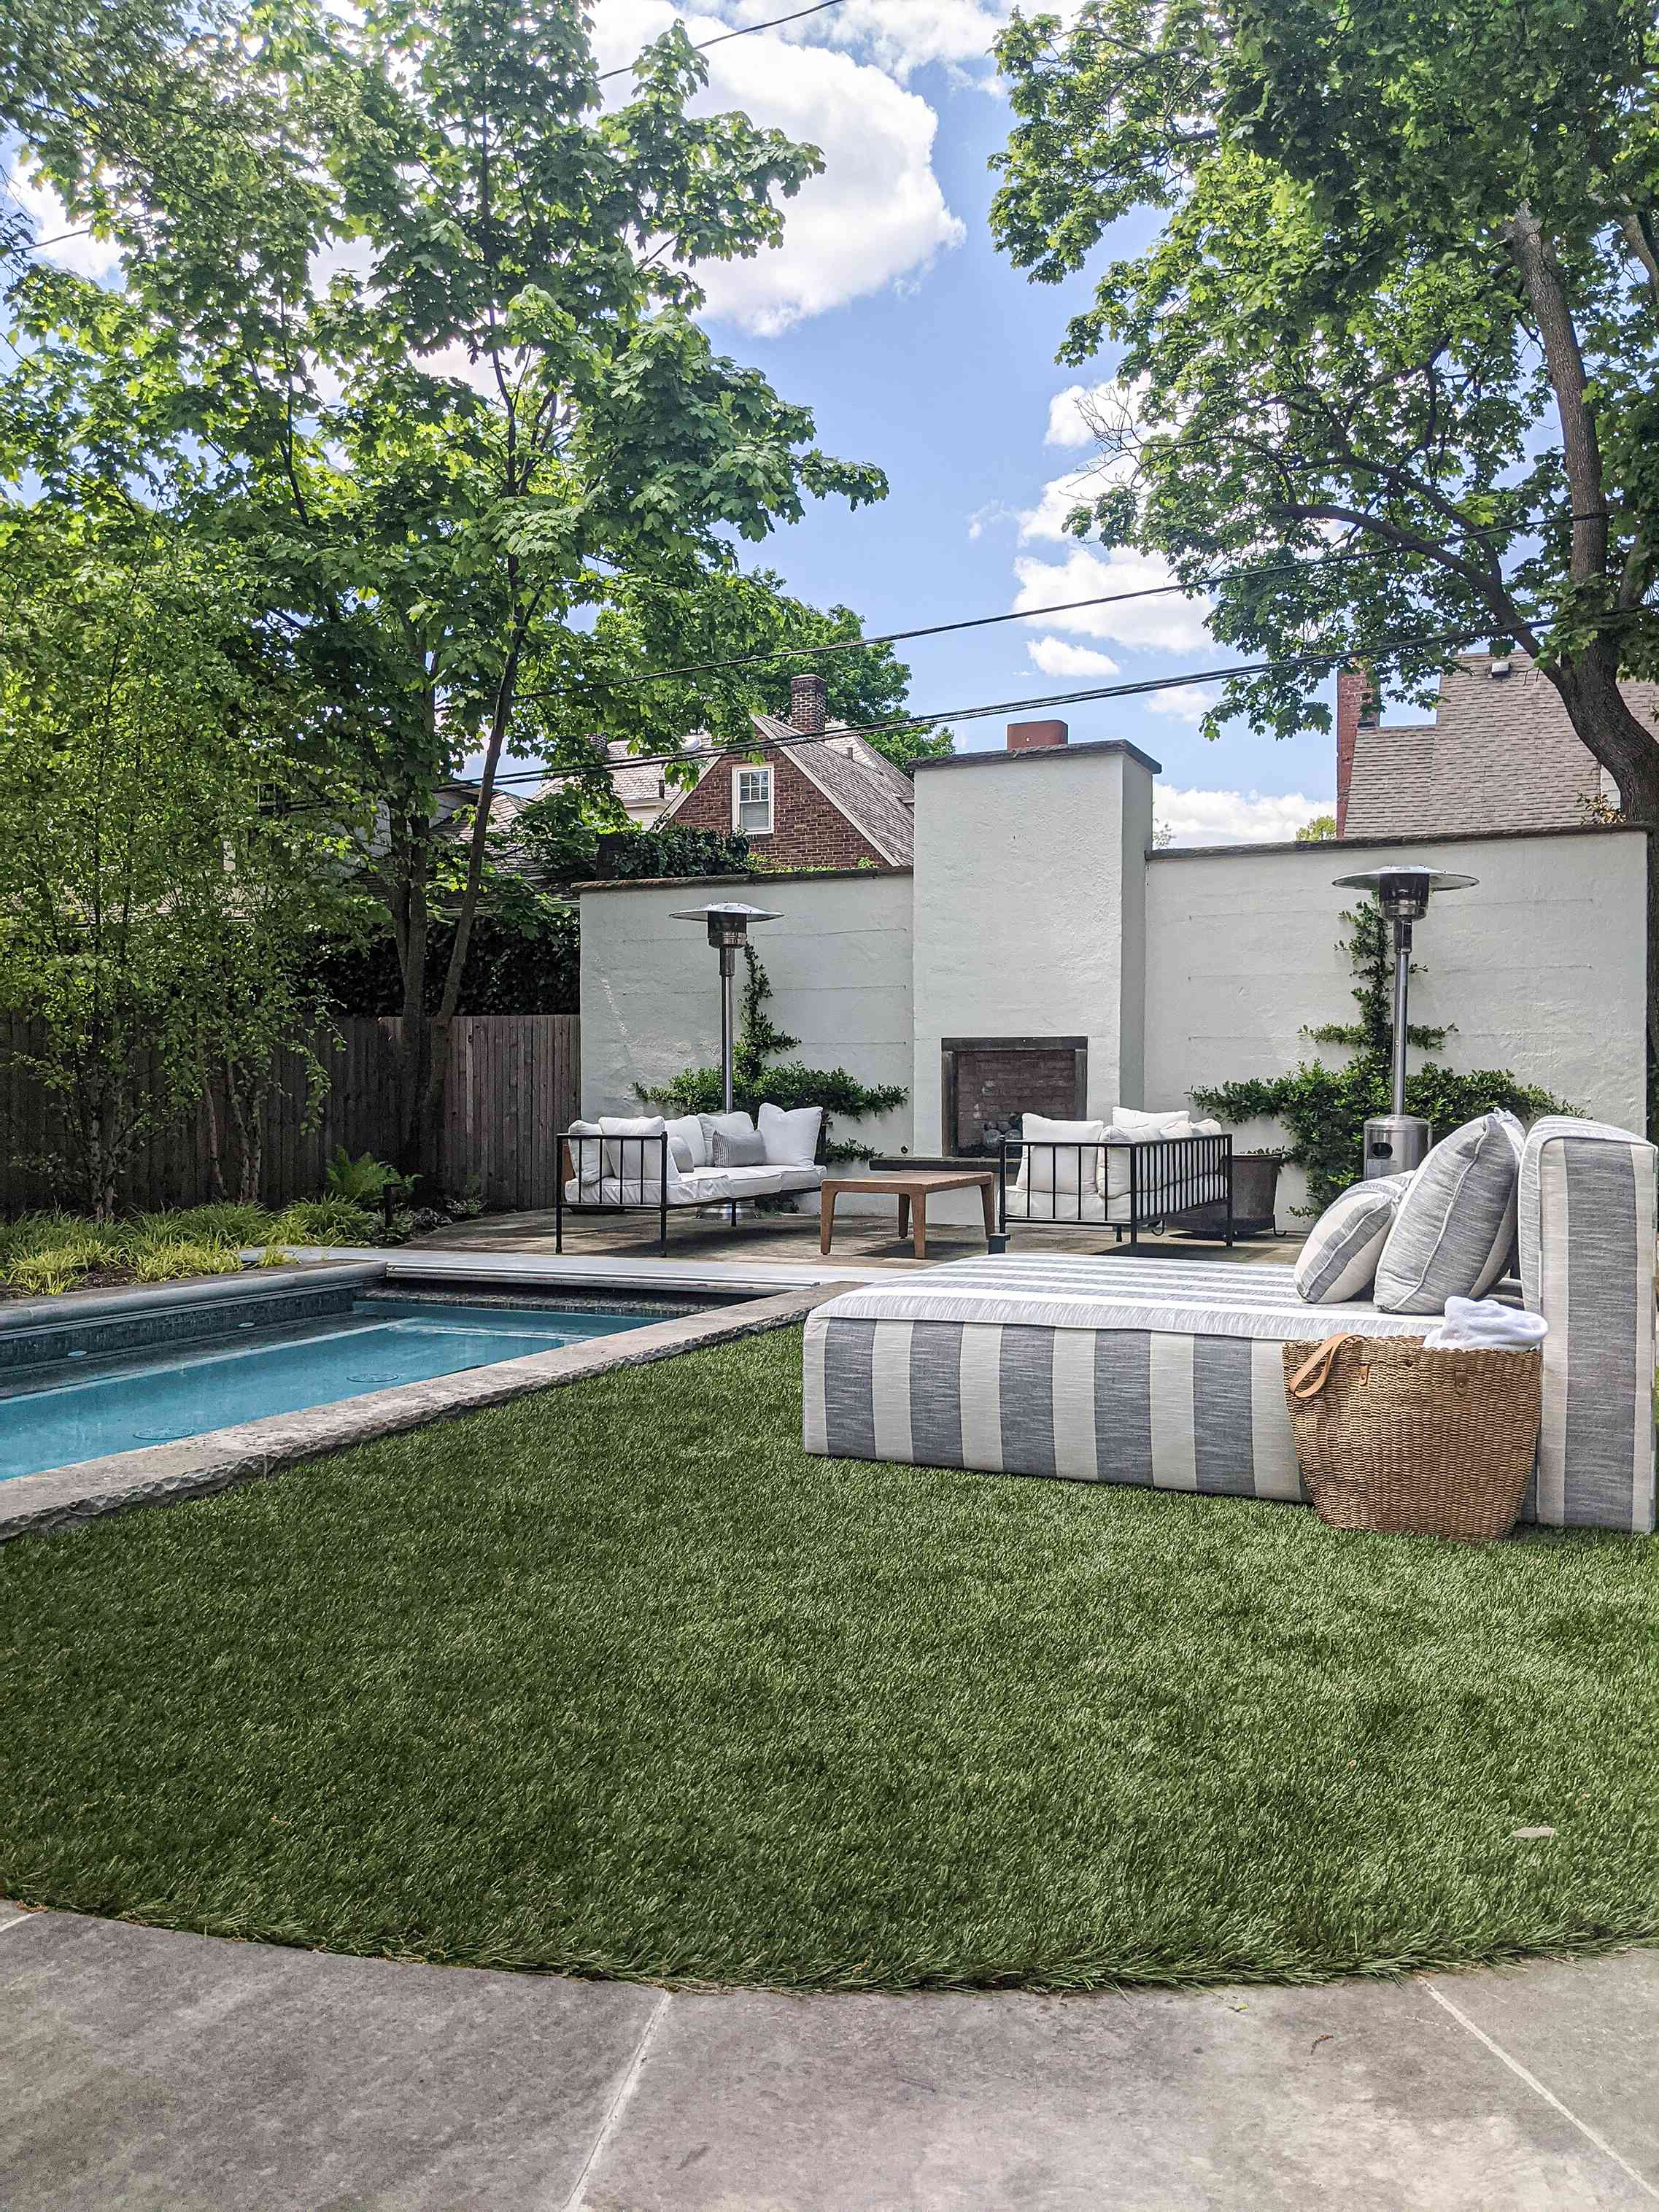 The backyard of Molly and Fritz features a pool, a cedar patio and a grassy area